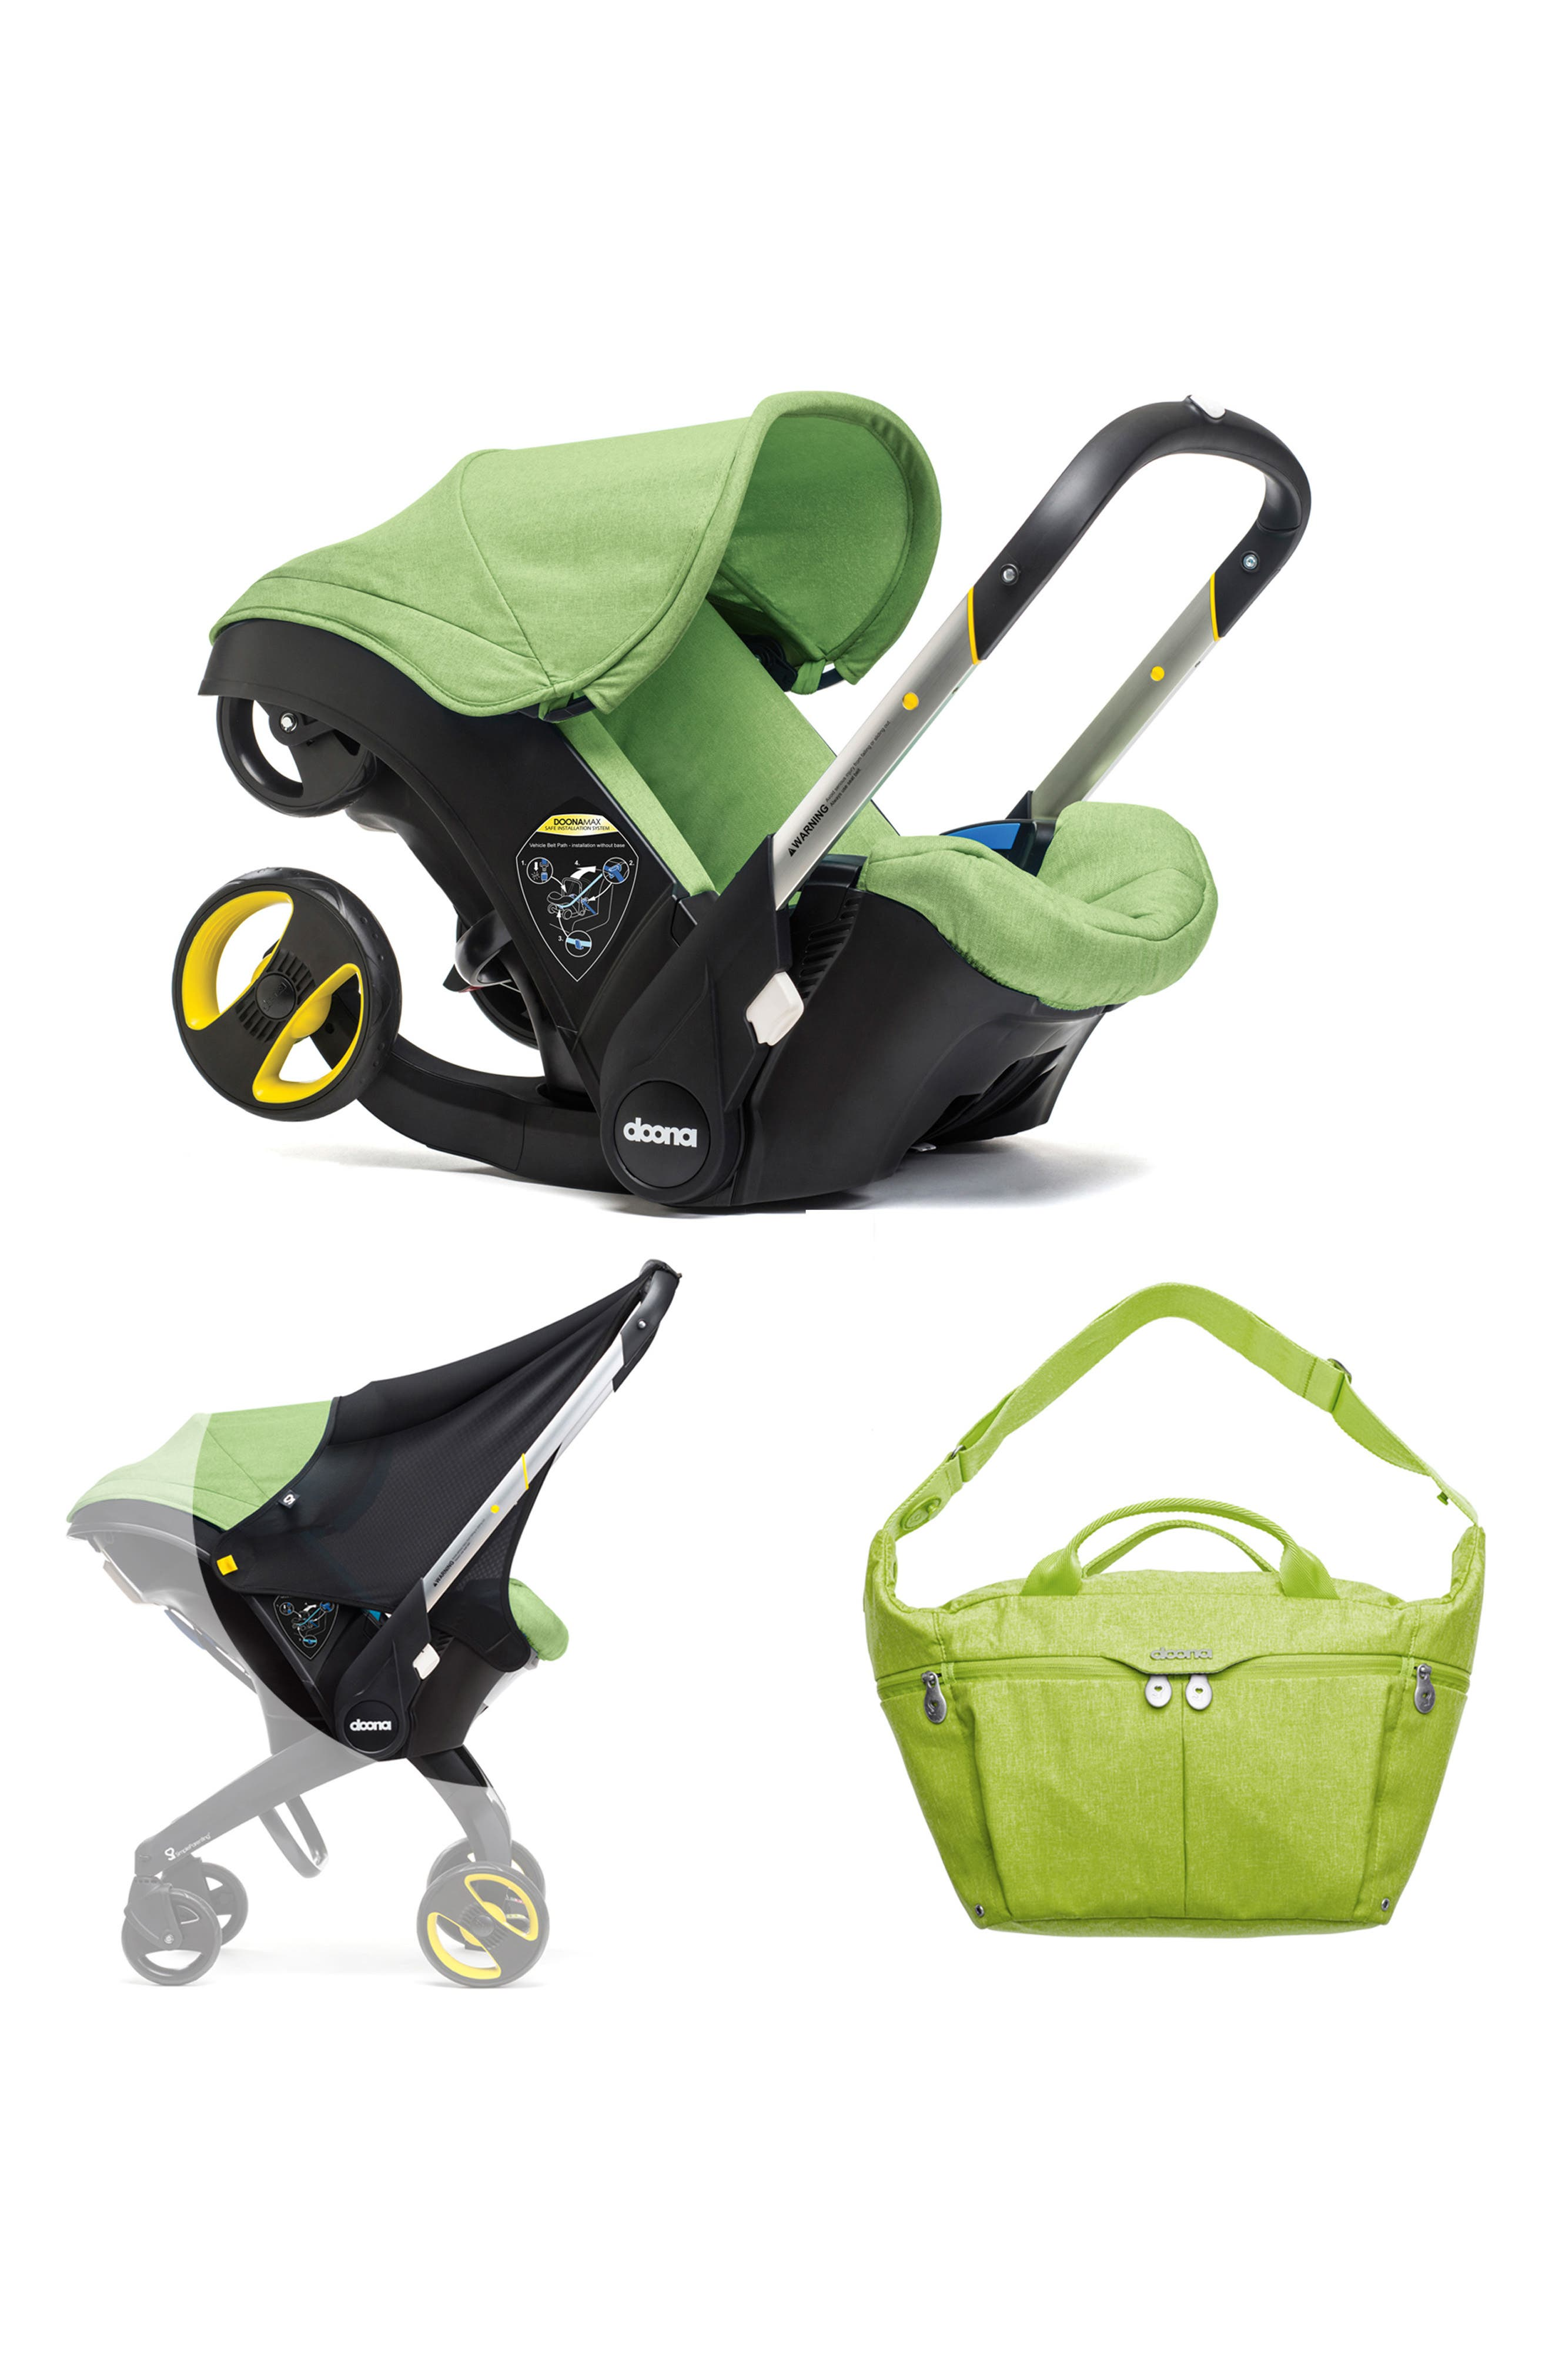 Convertible Infant Car Seat/Compact Stroller System, Sun Shade & All-Day Diaper Bag Bundle,                             Main thumbnail 1, color,                             300